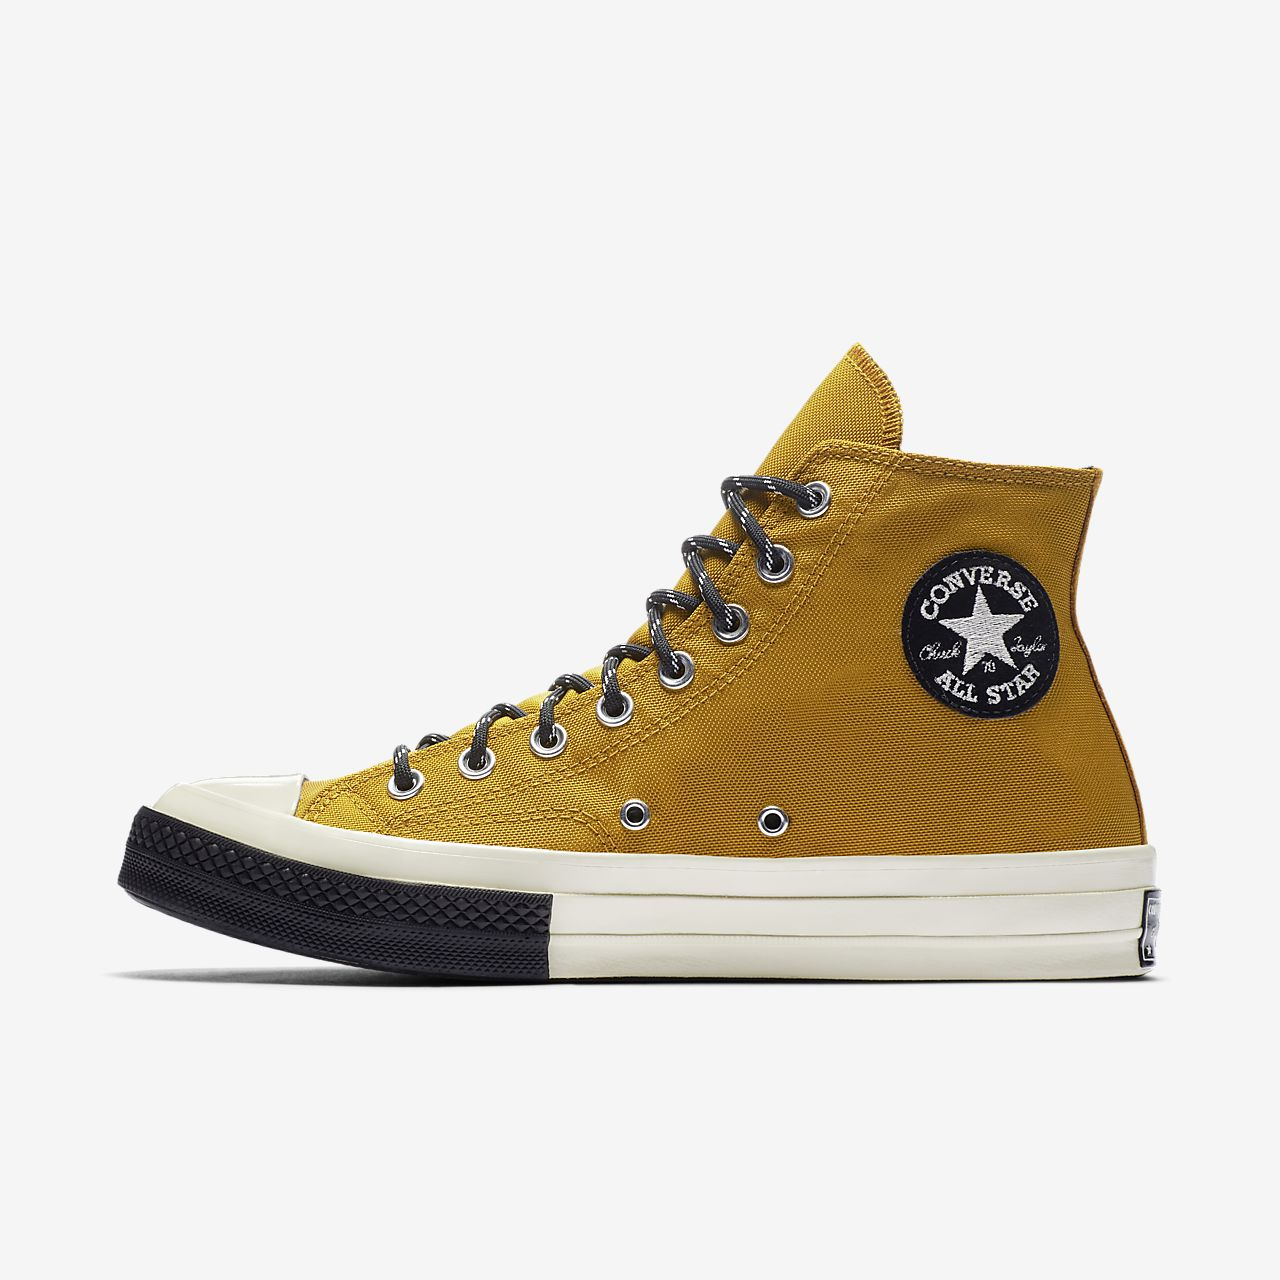 Converse Chuck 70 Trek Tech High Top Unisex Shoe